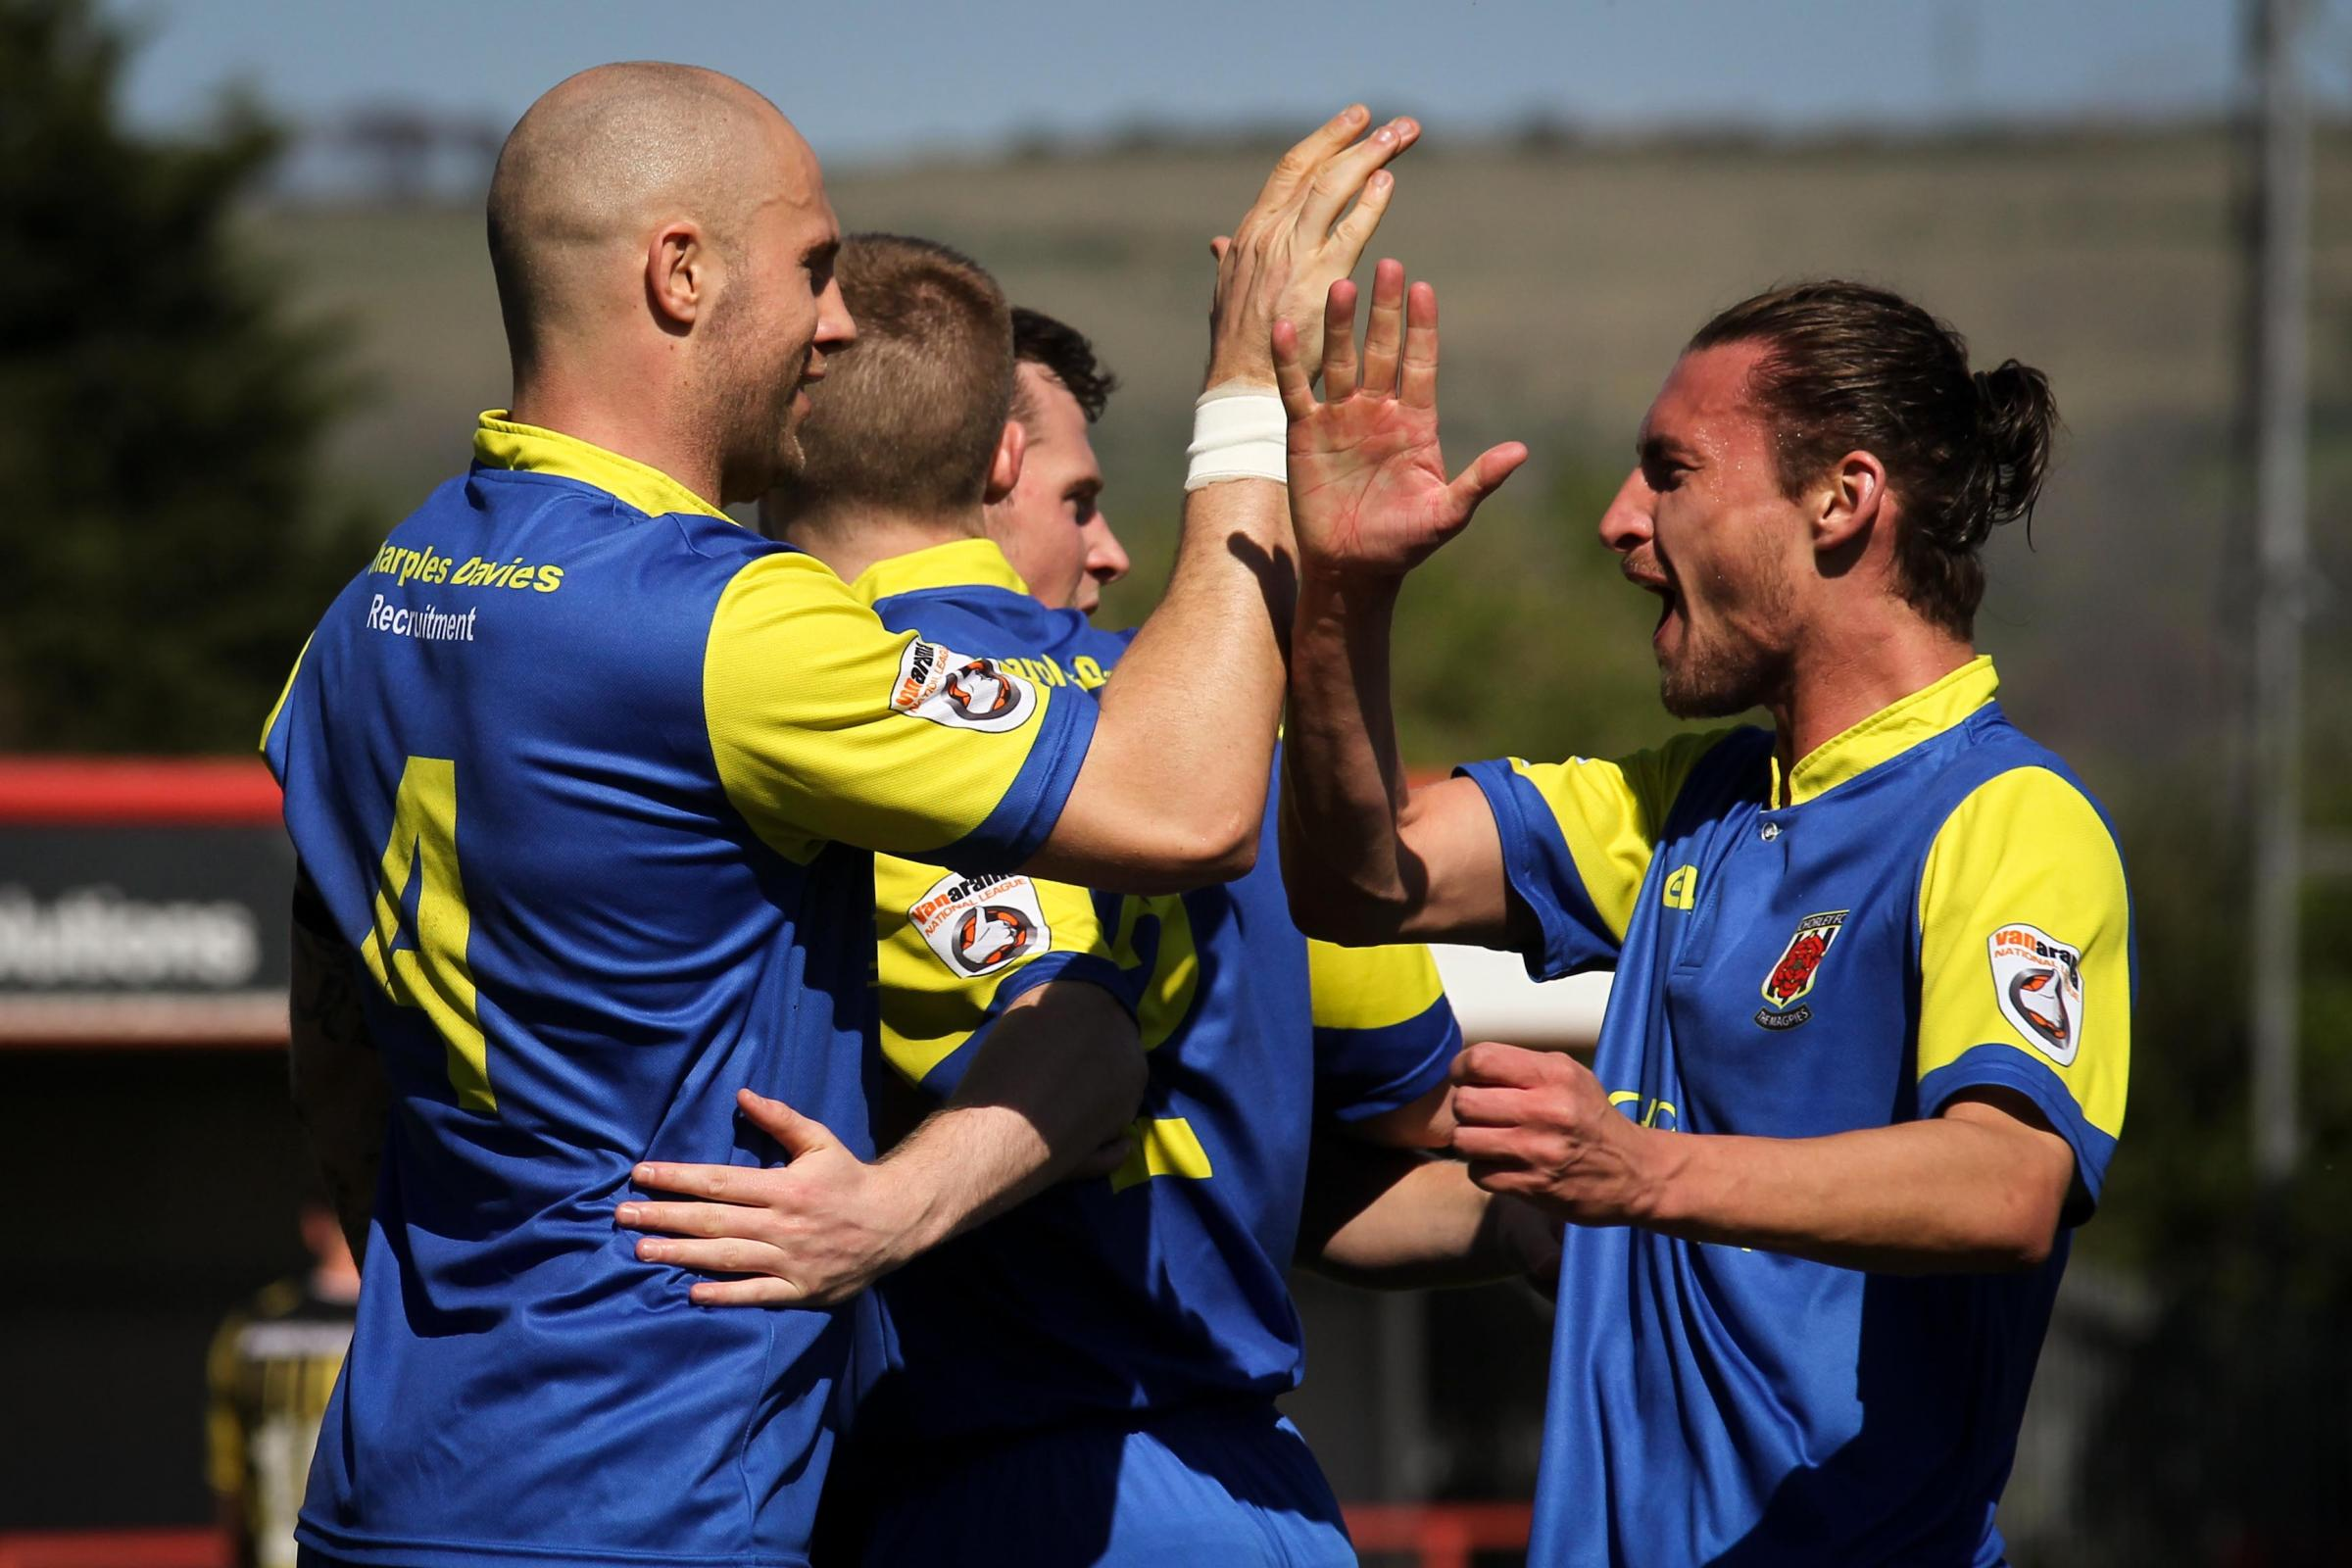 Dale Whitham celebrates with his team-mates. Pic by Josh Vosper